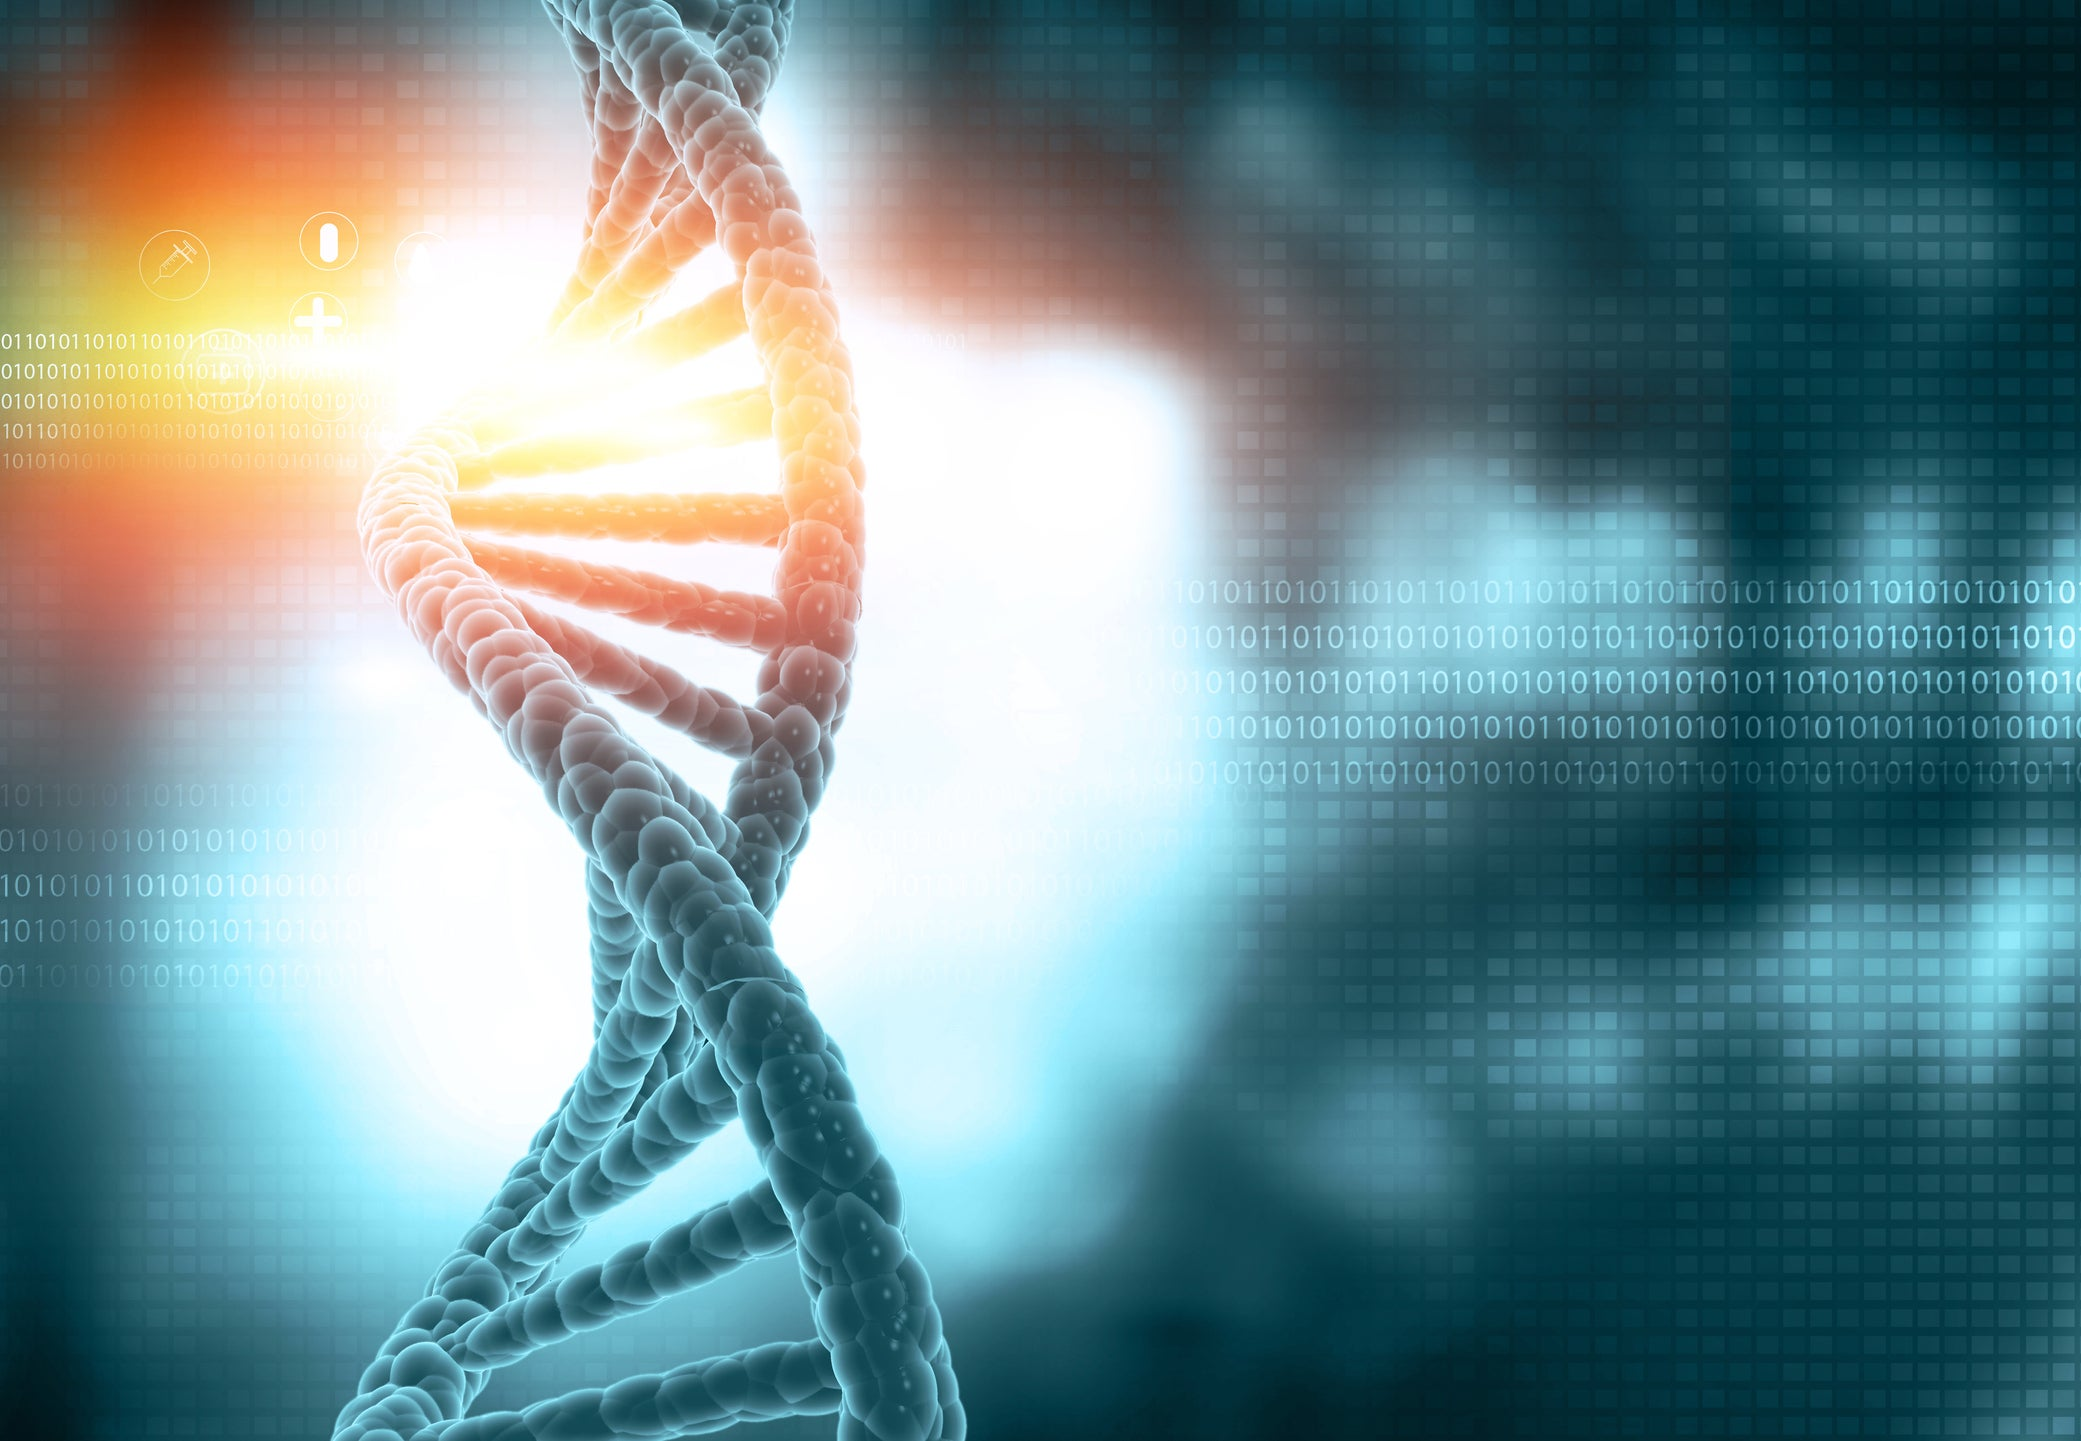 Why Fulgent Genetics Stock Temporarily Soared 31% Today